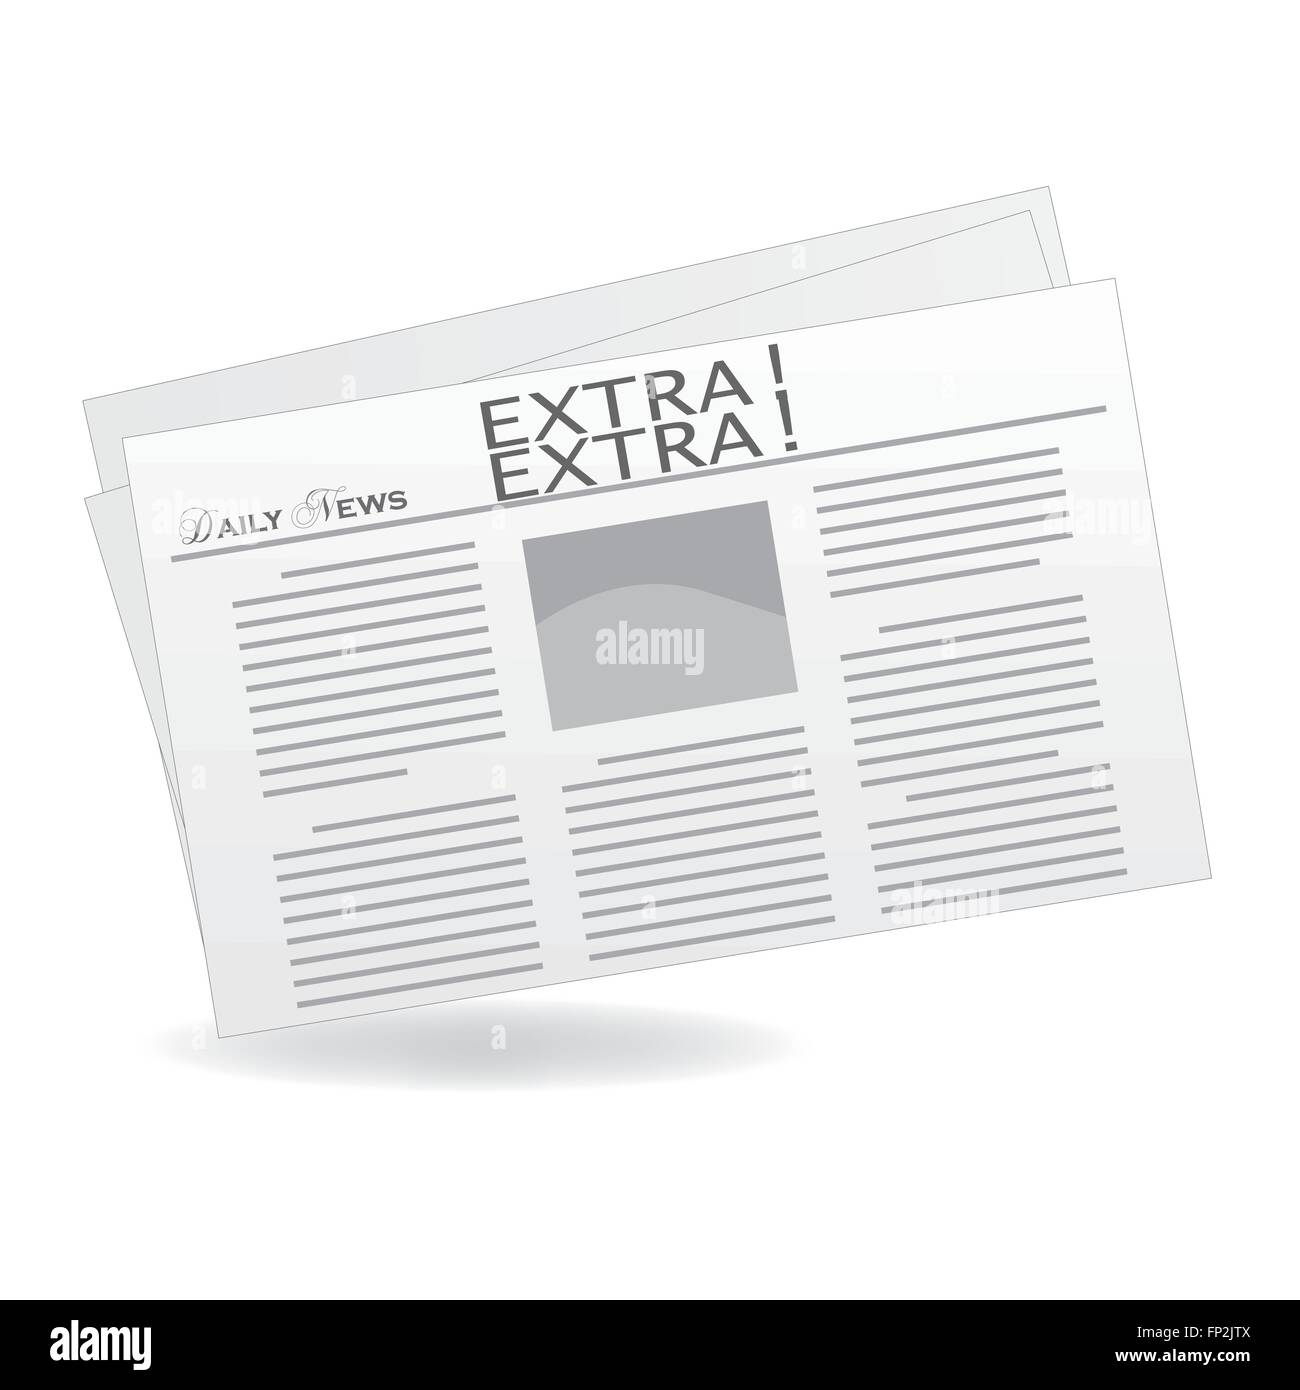 newspaper front page blank stock vector images - alamy